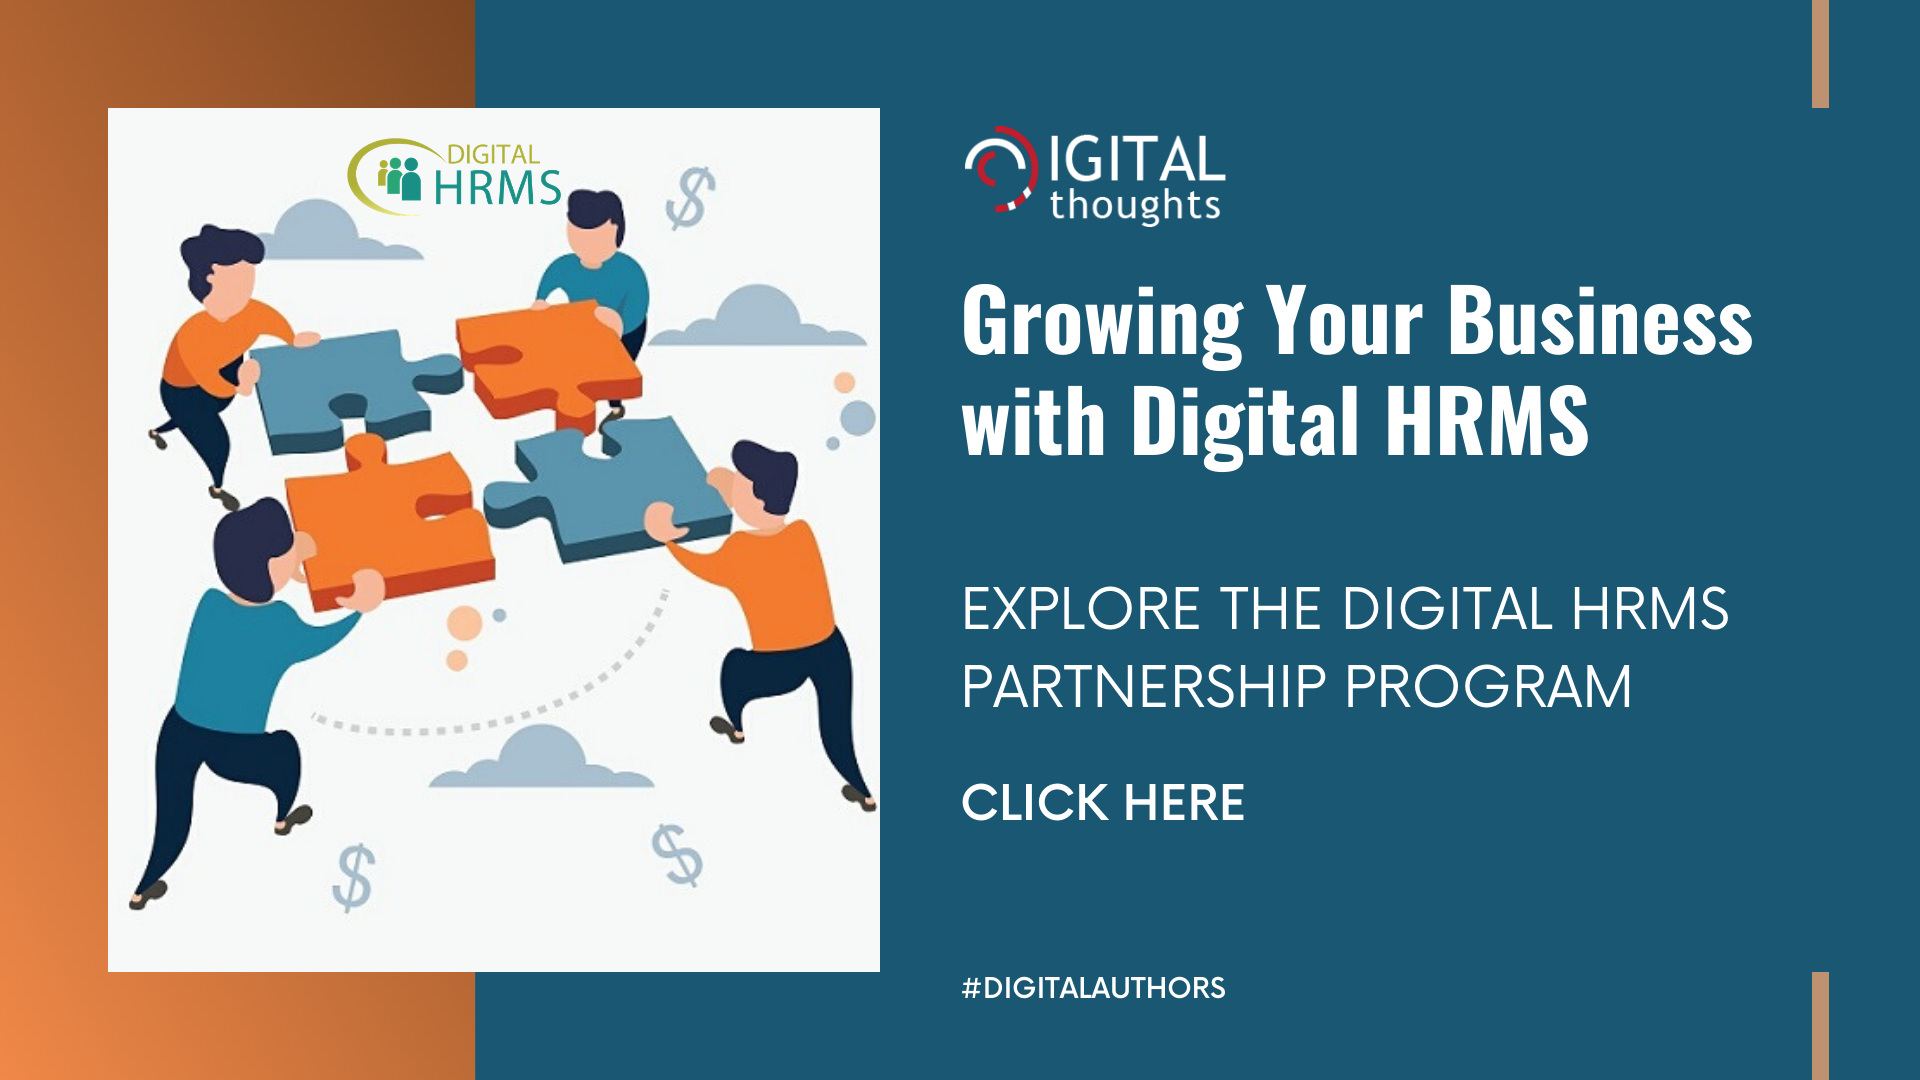 Growing Your Business with Digital HRMS: Explore the Benefits of our Partnership Program